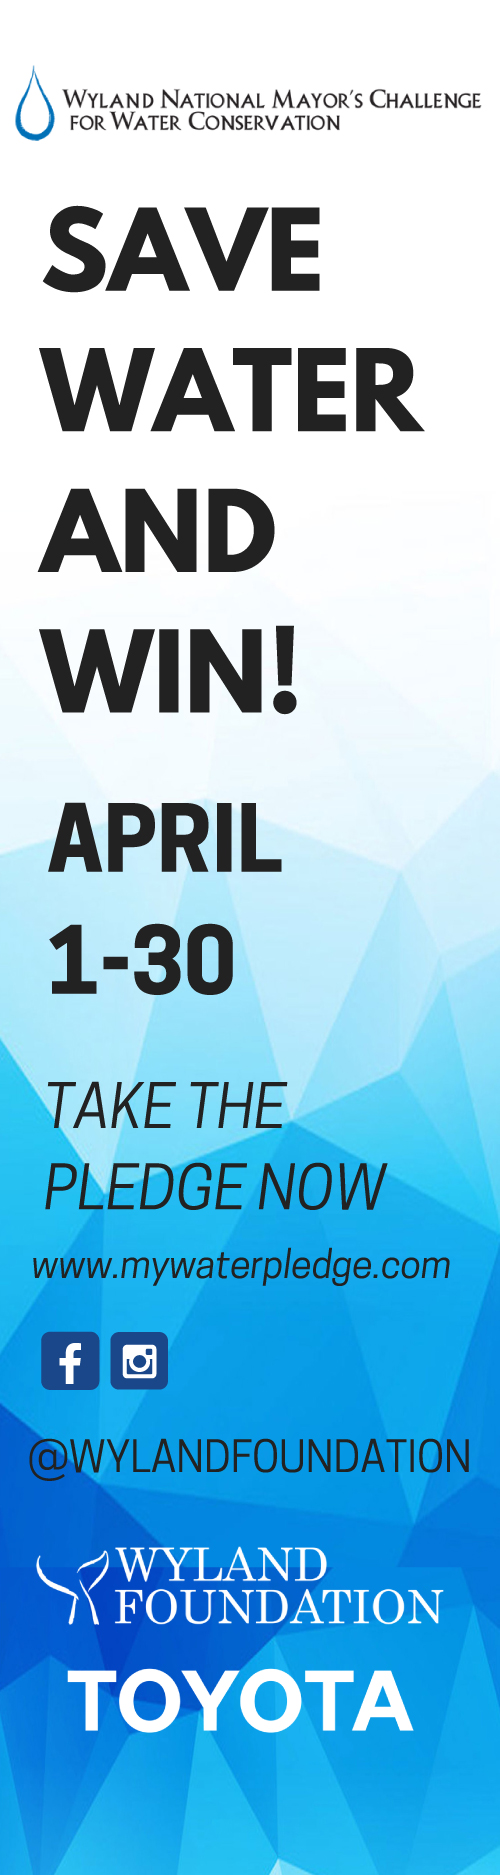 Save Water and Win! April 1-30, Wyland Water Challenge, mywaterpledge.com